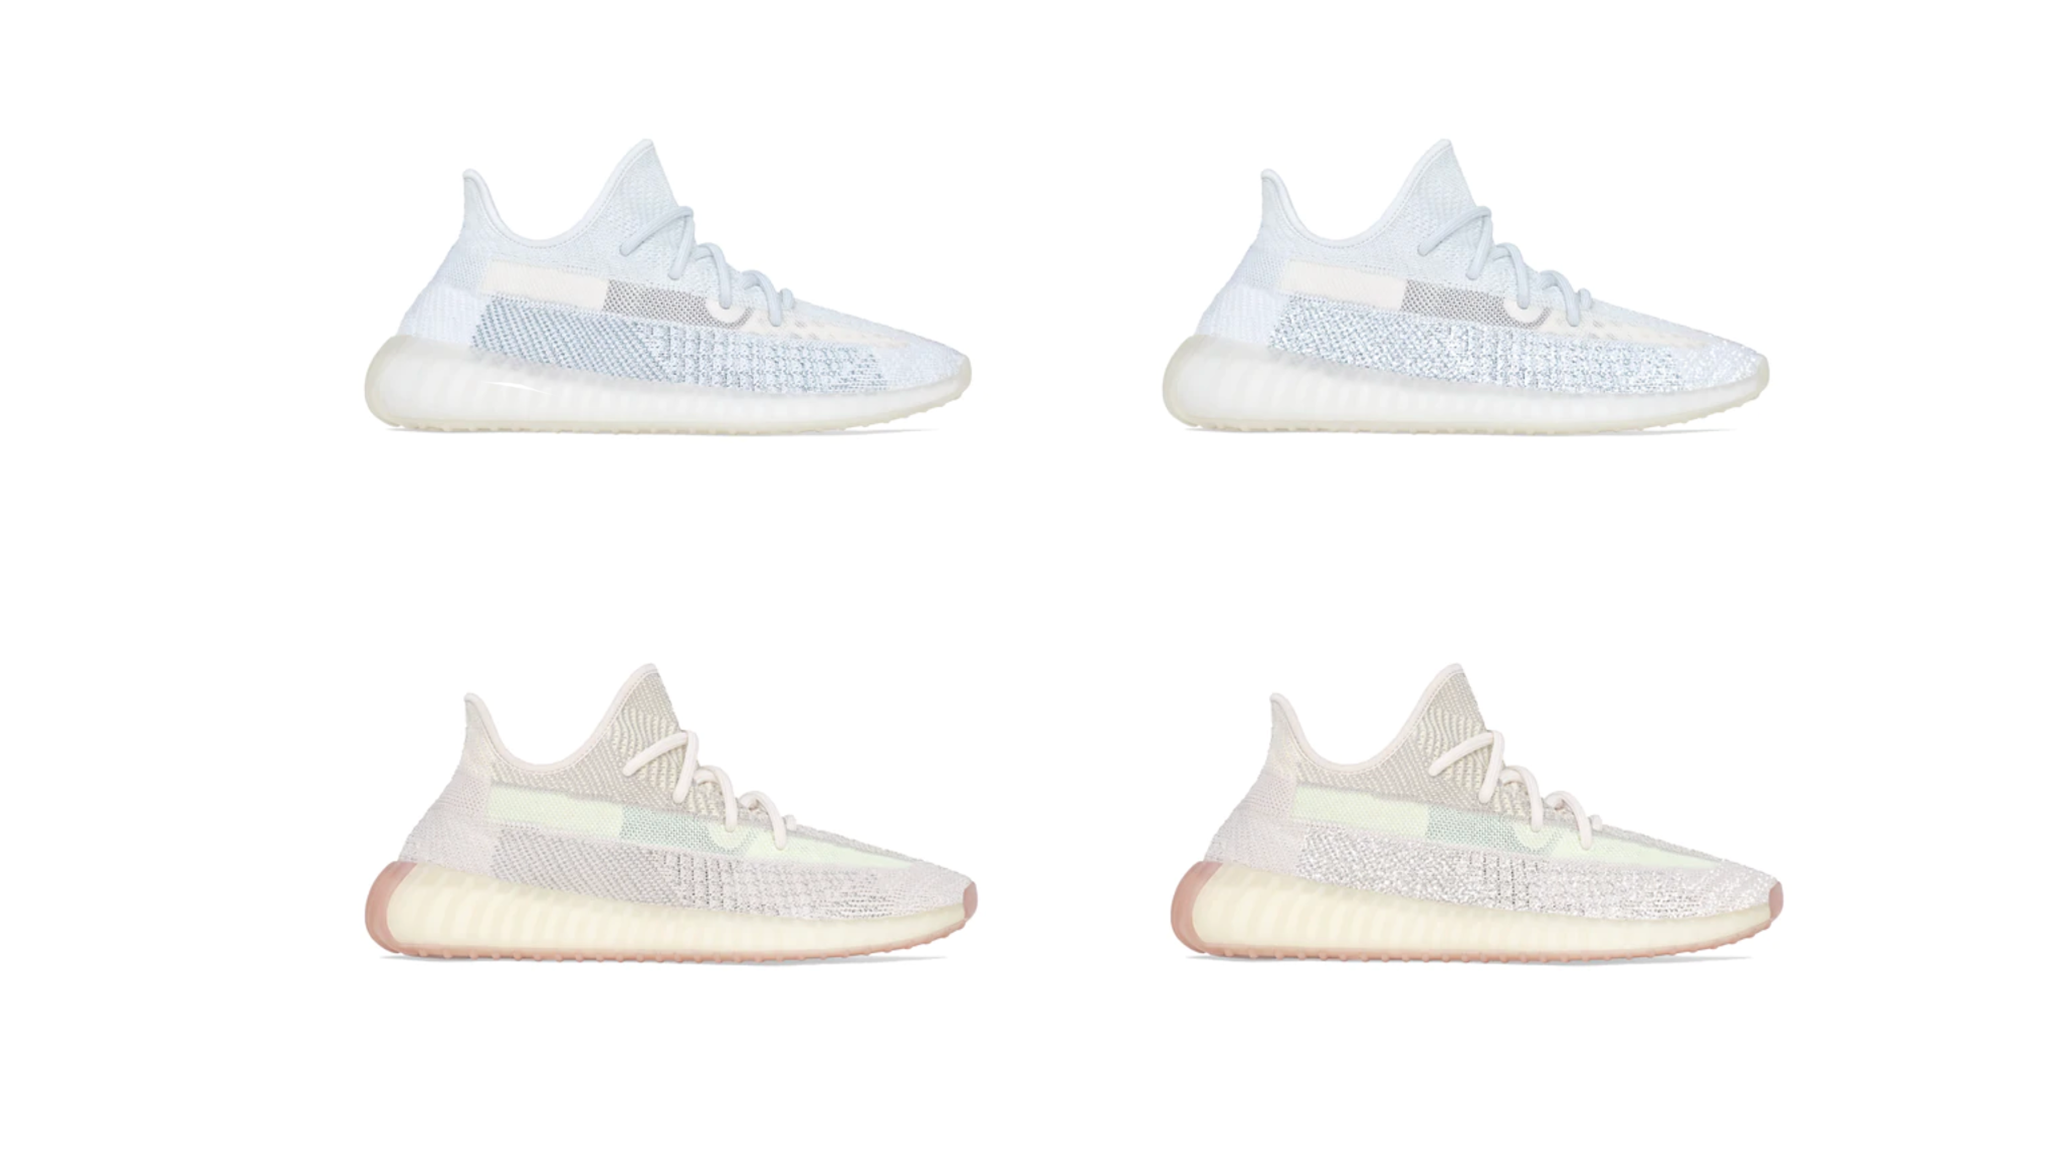 pretty nice 10ac0 7524f YEEZY BOOST 350 V2 PRE-ORDERS Are Now Available